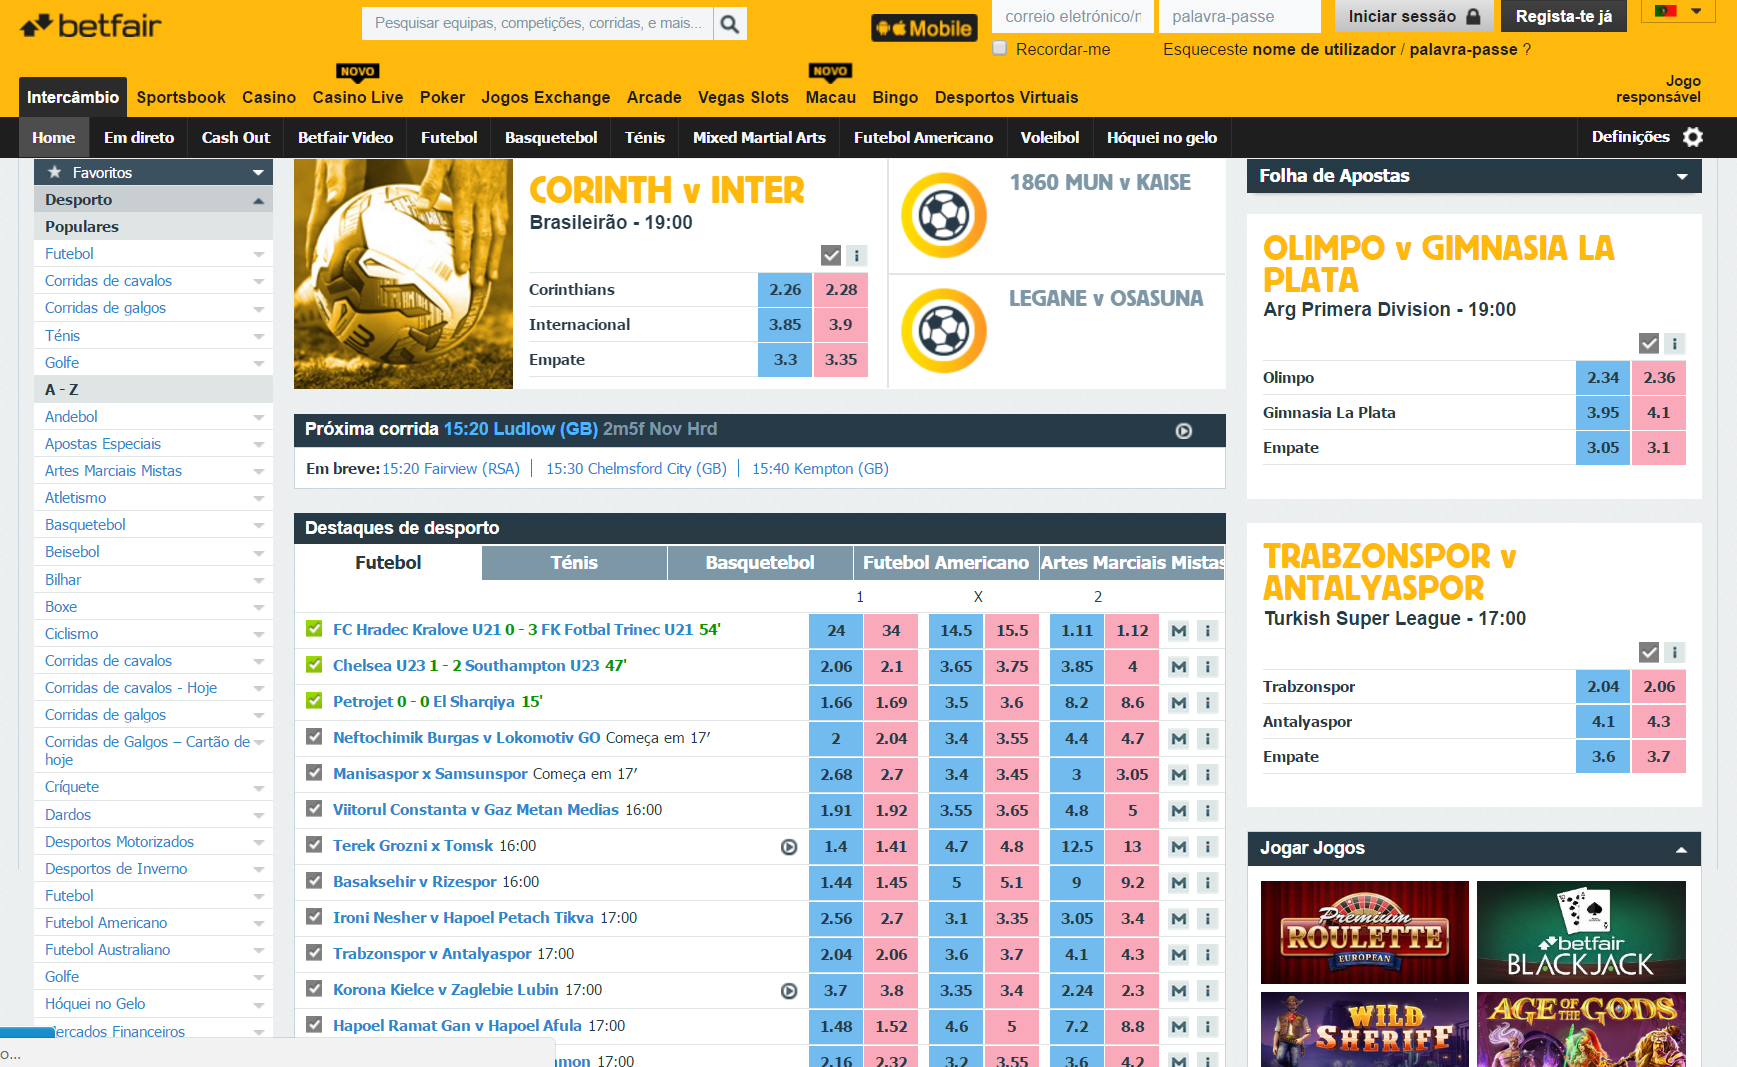 Betfair Intercambio